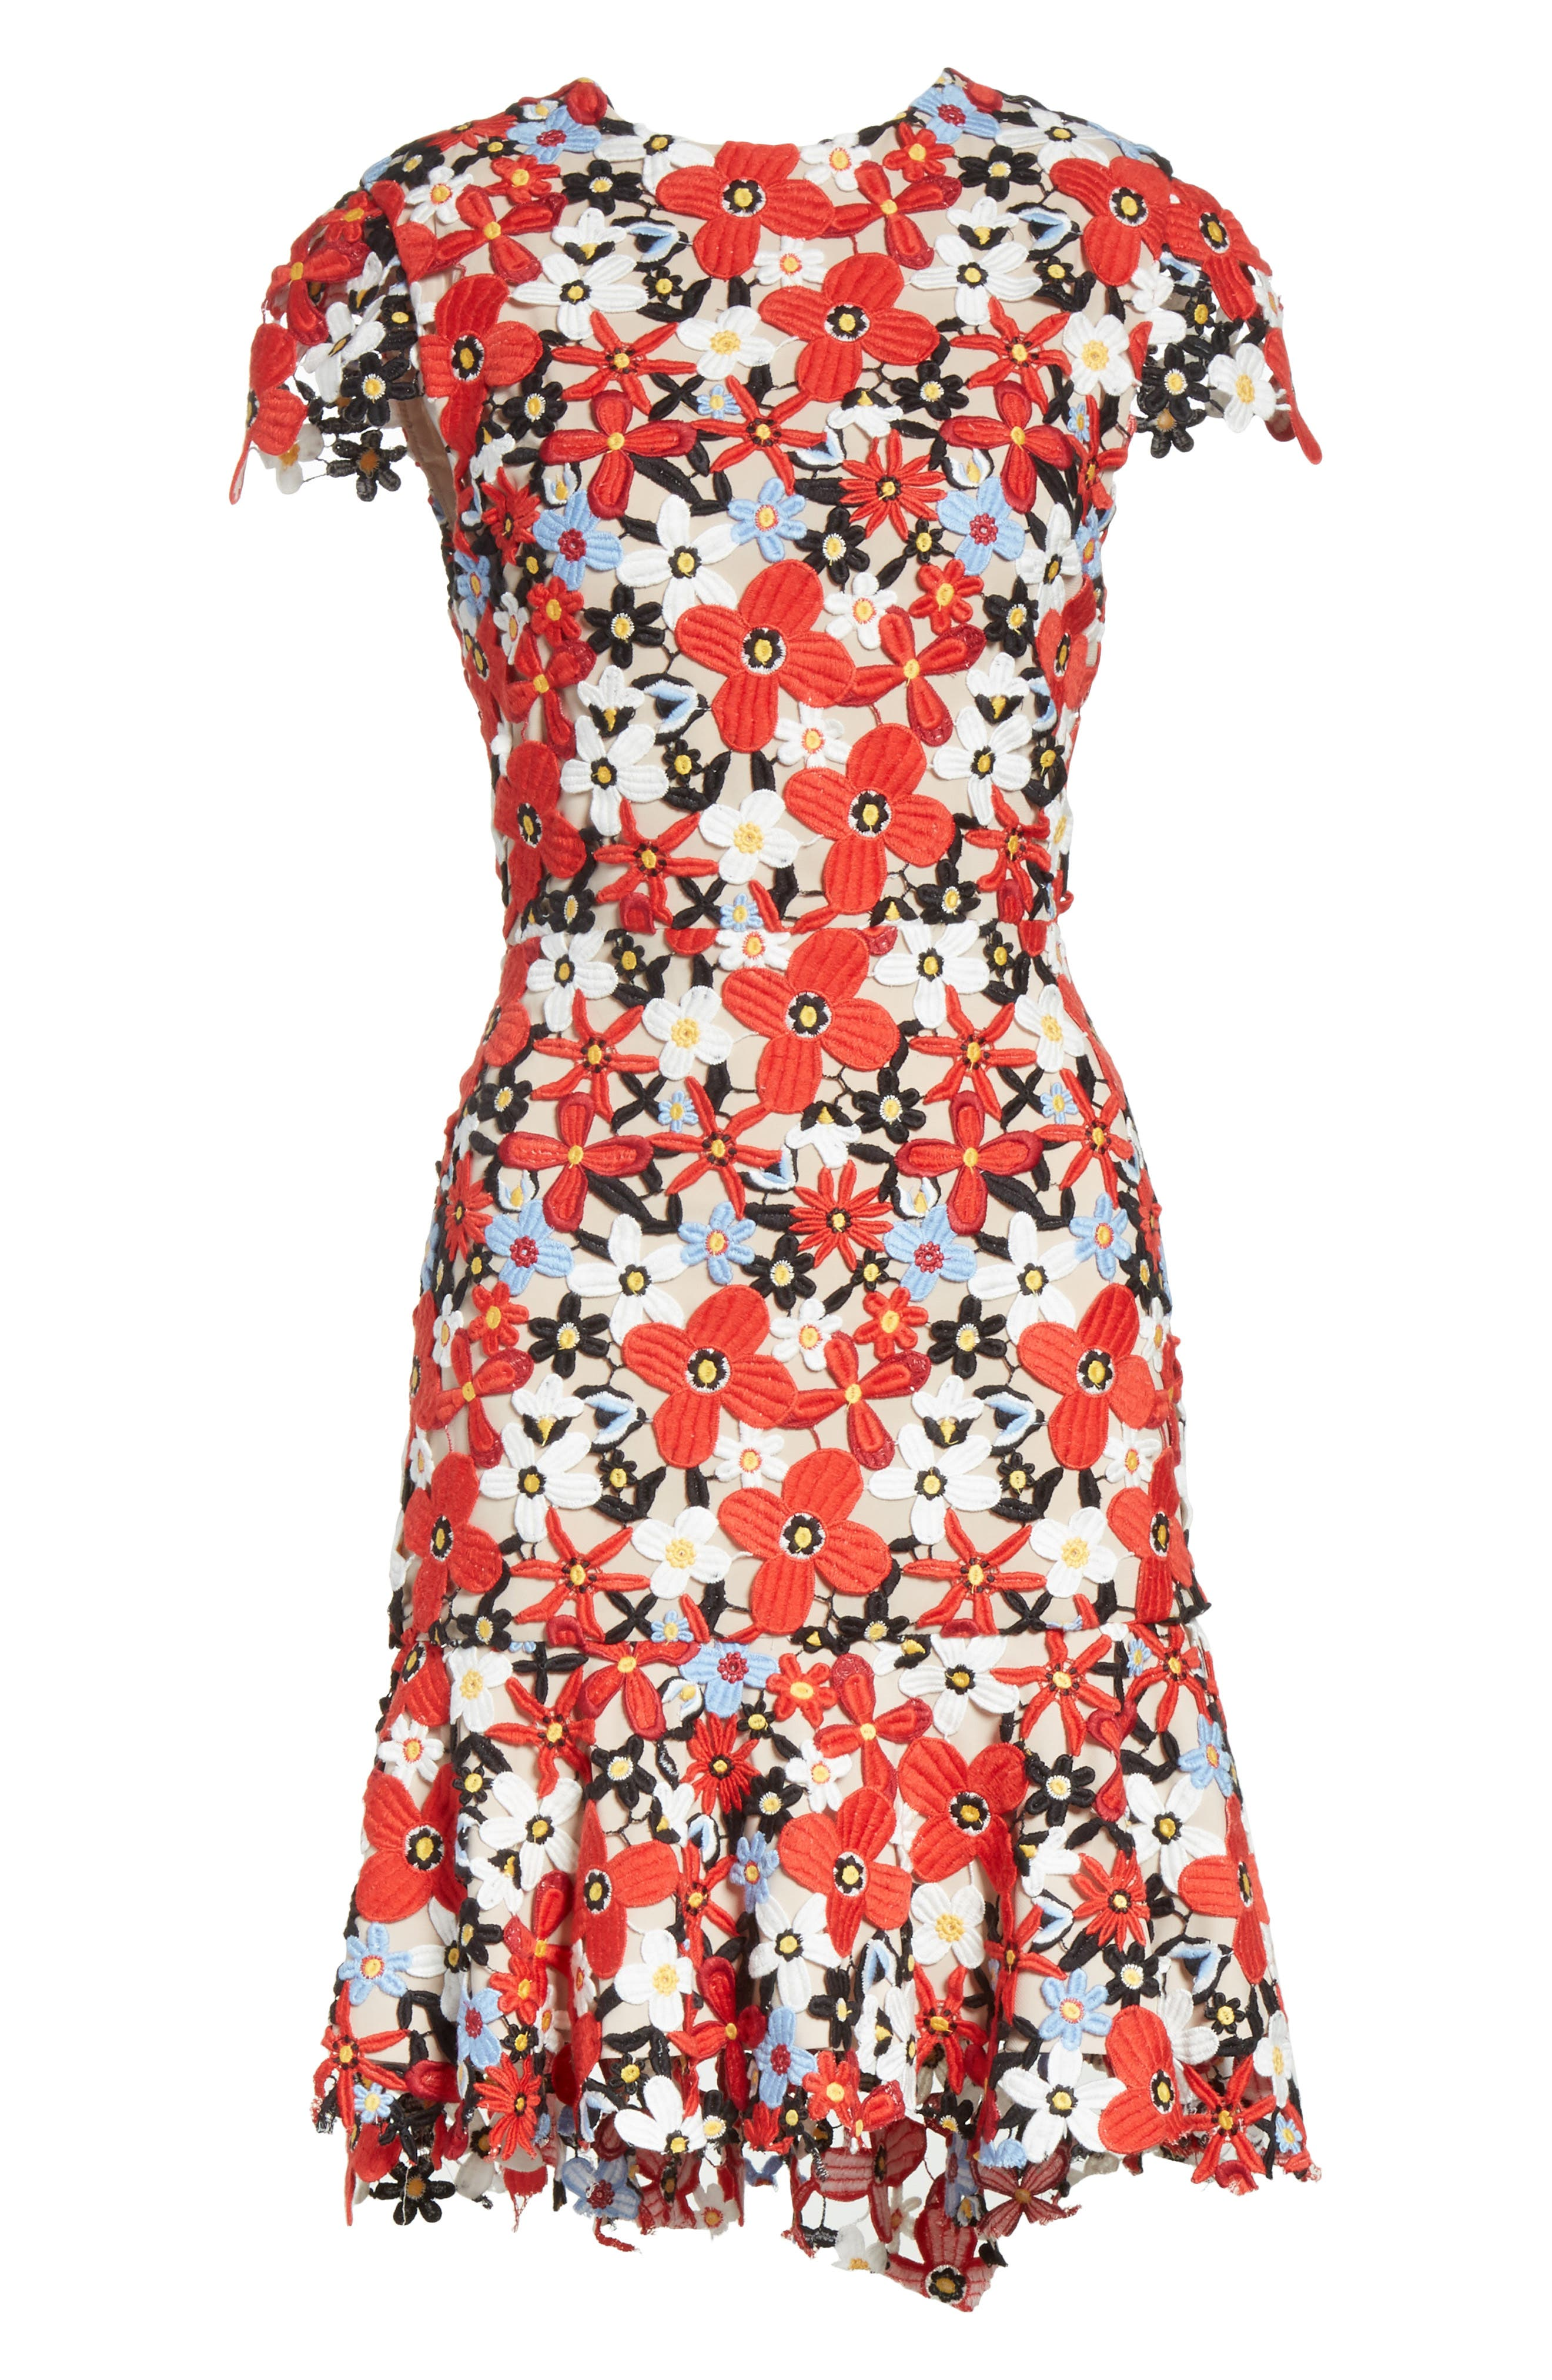 Imani Floral Fit & Flare Dress,                             Alternate thumbnail 6, color,                             606